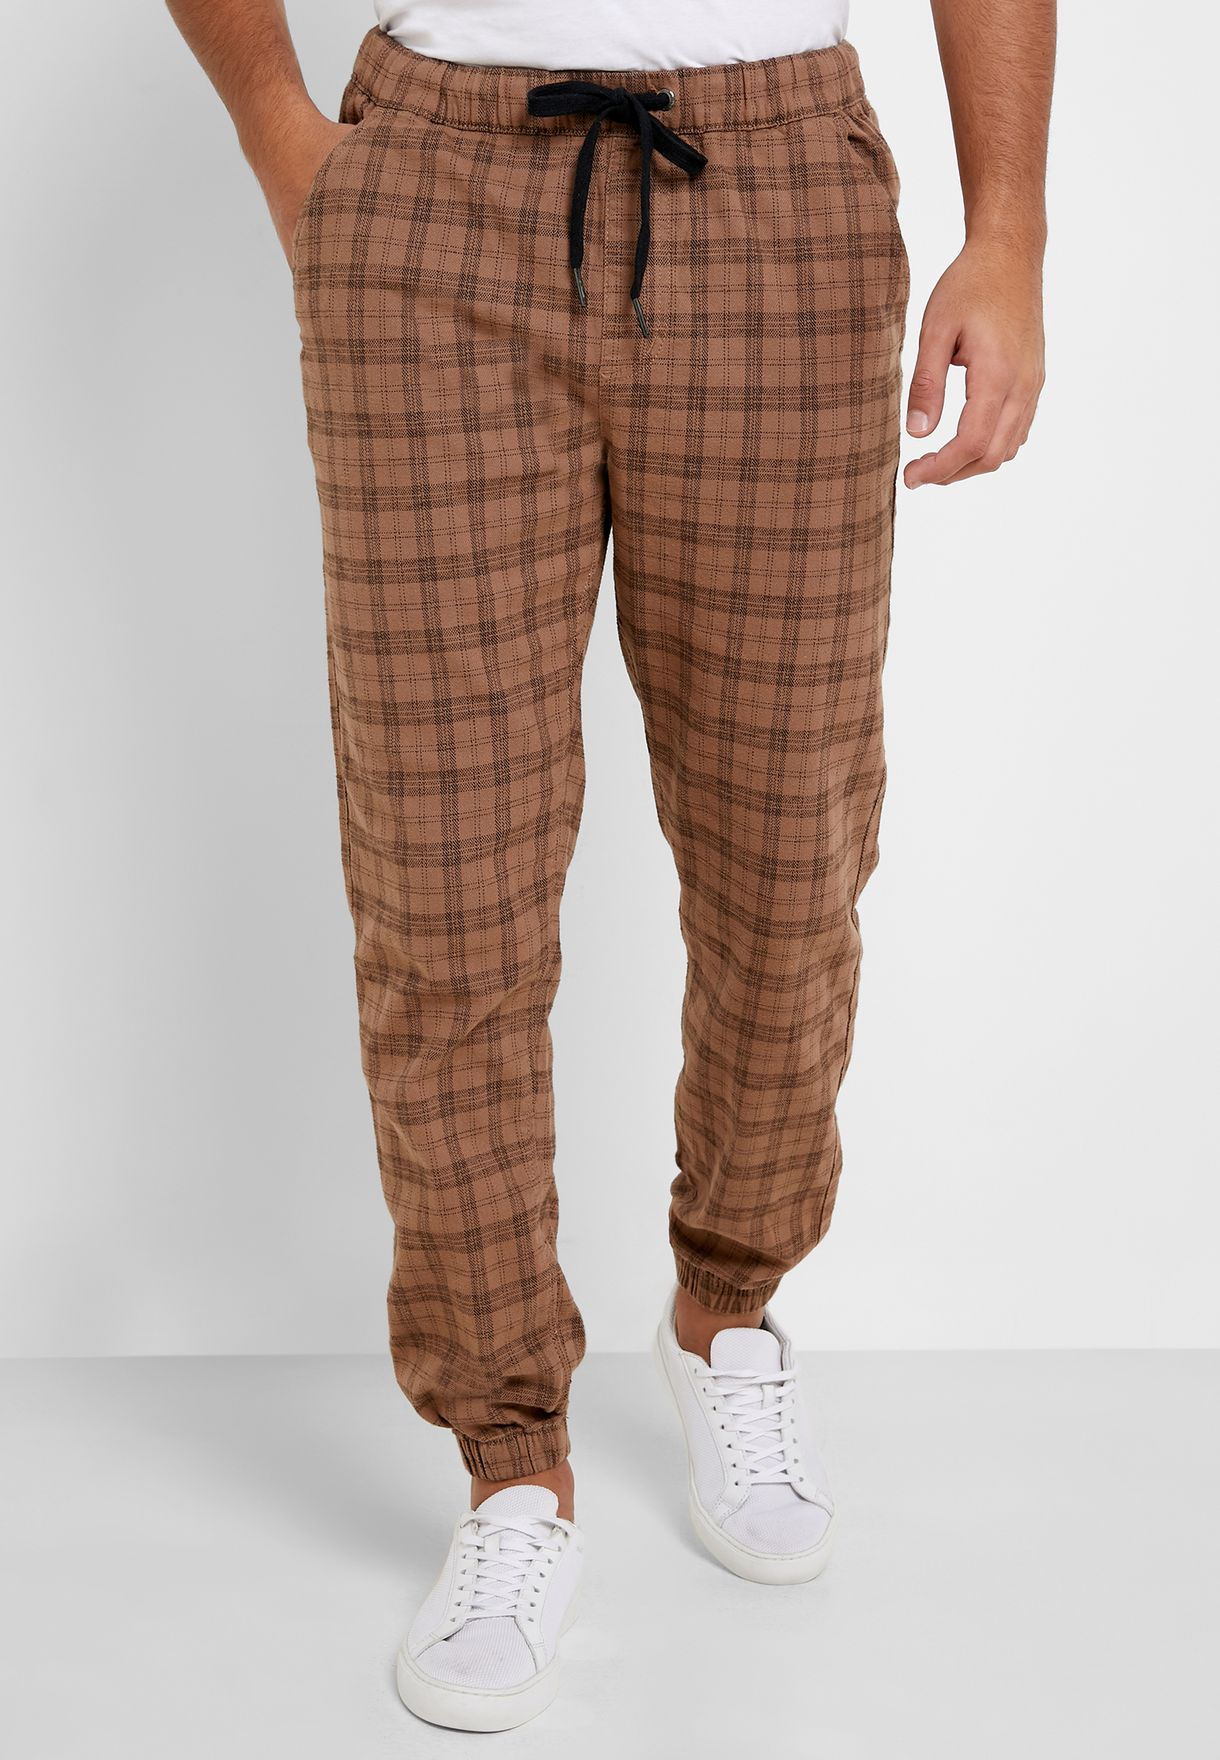 Checked Cuffed Joggers Pants